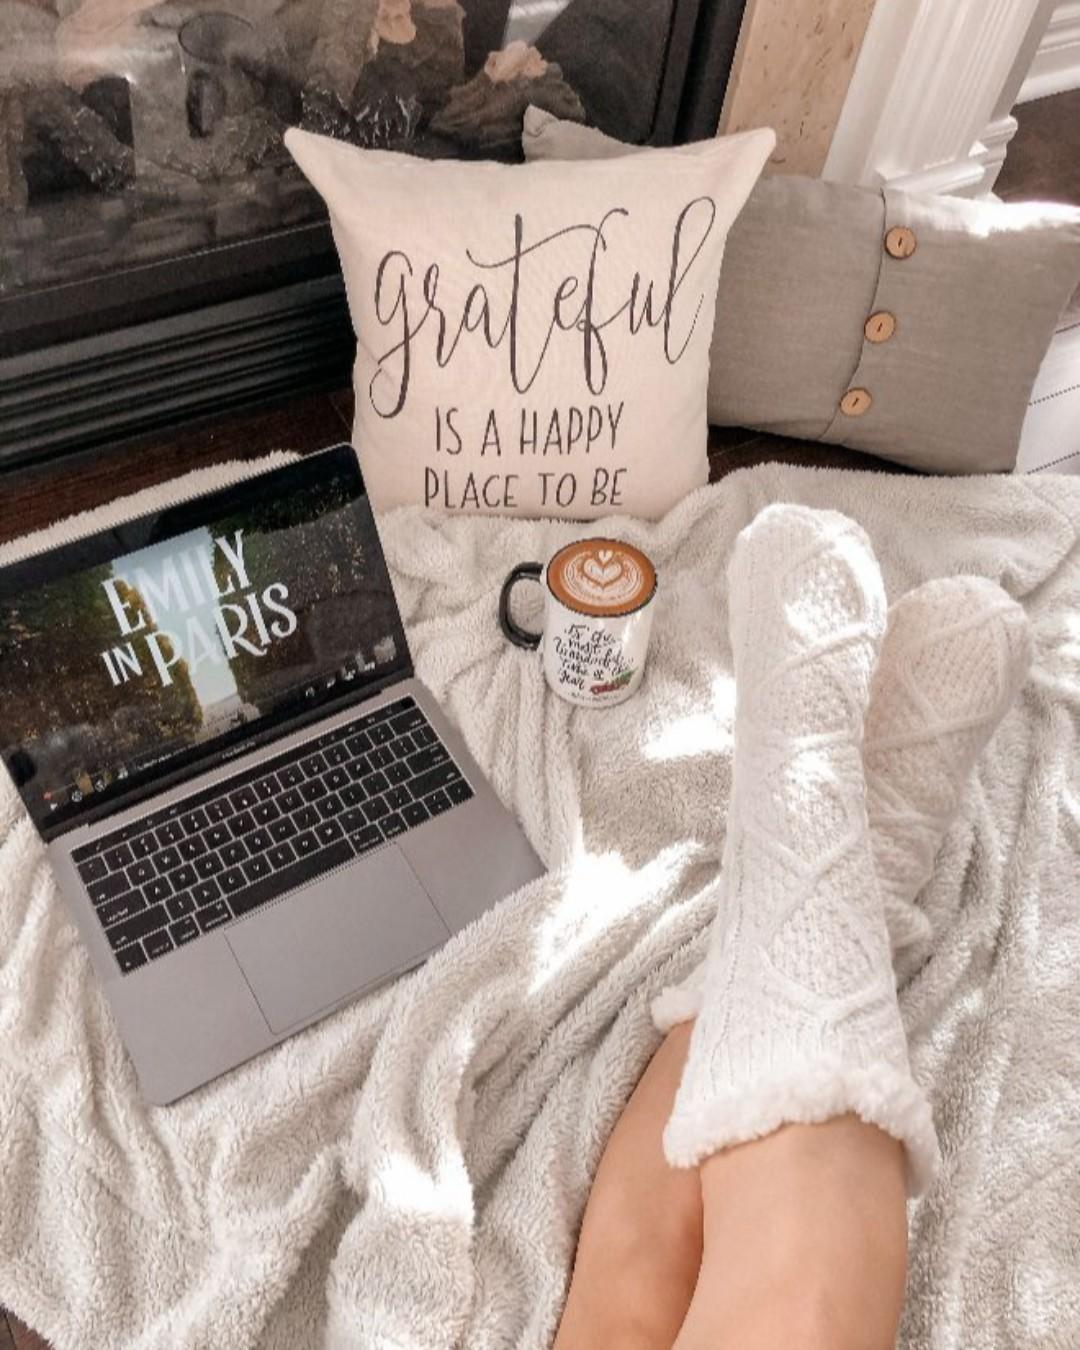 White knit socks in front of a latte and a laptop